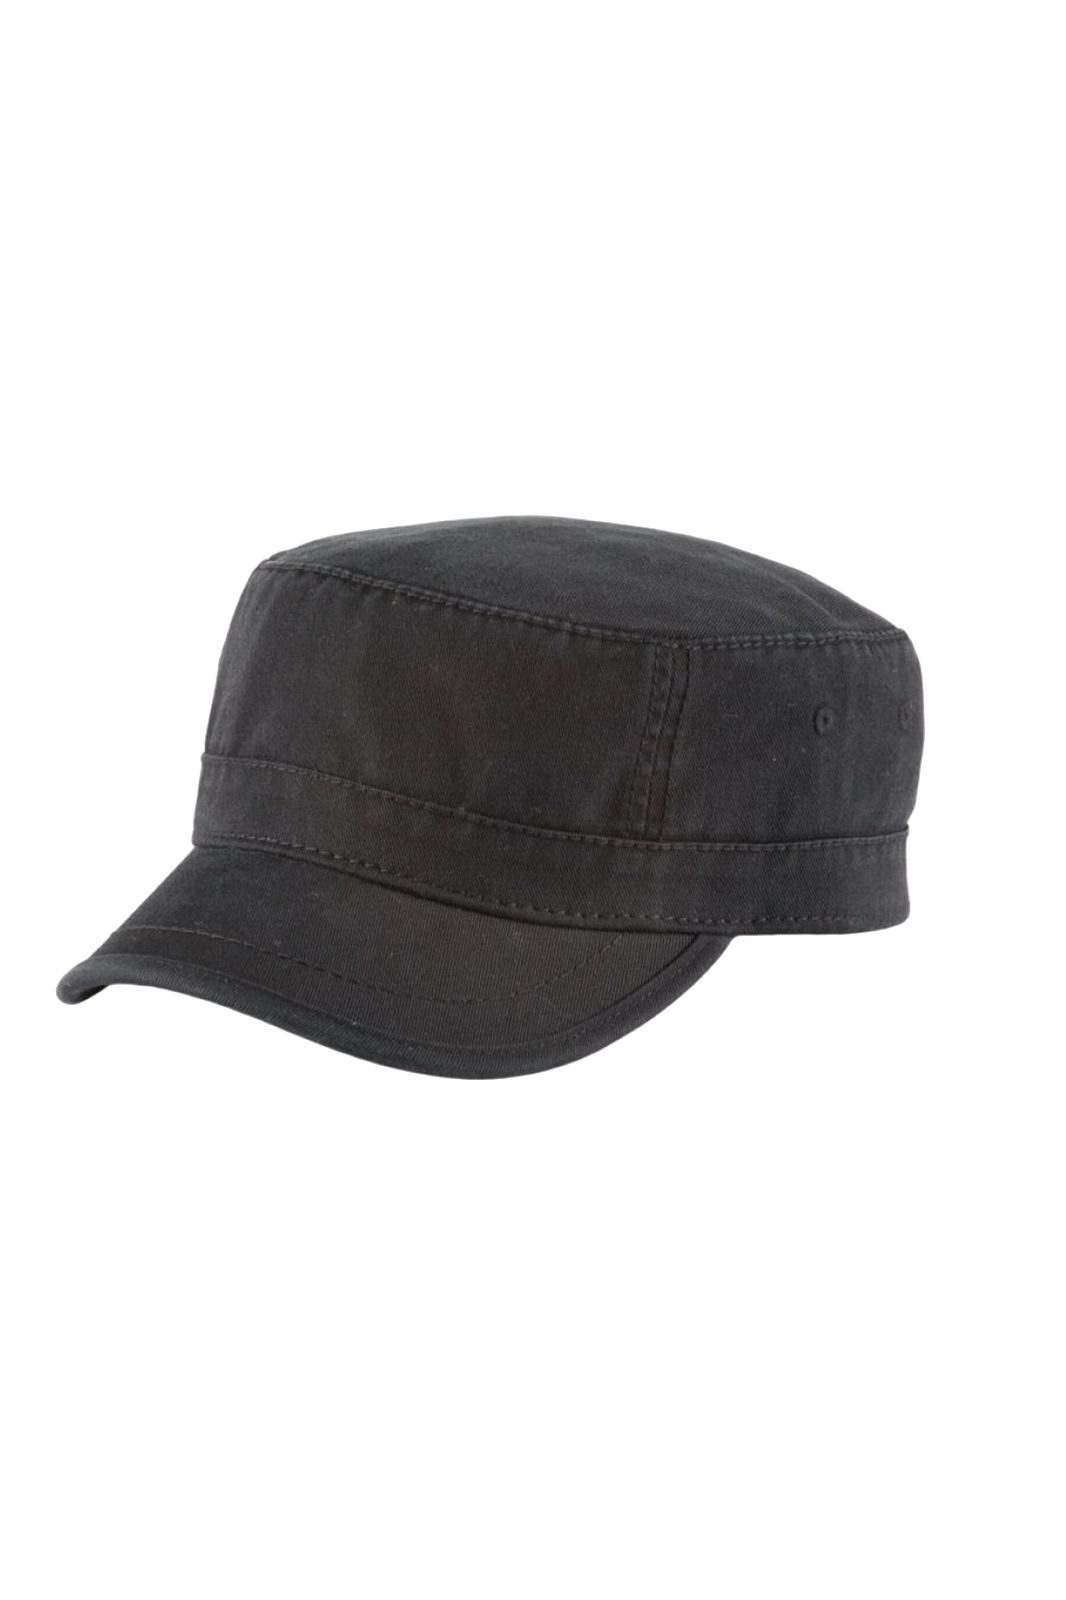 Atlantis Warrior Army Cap Black